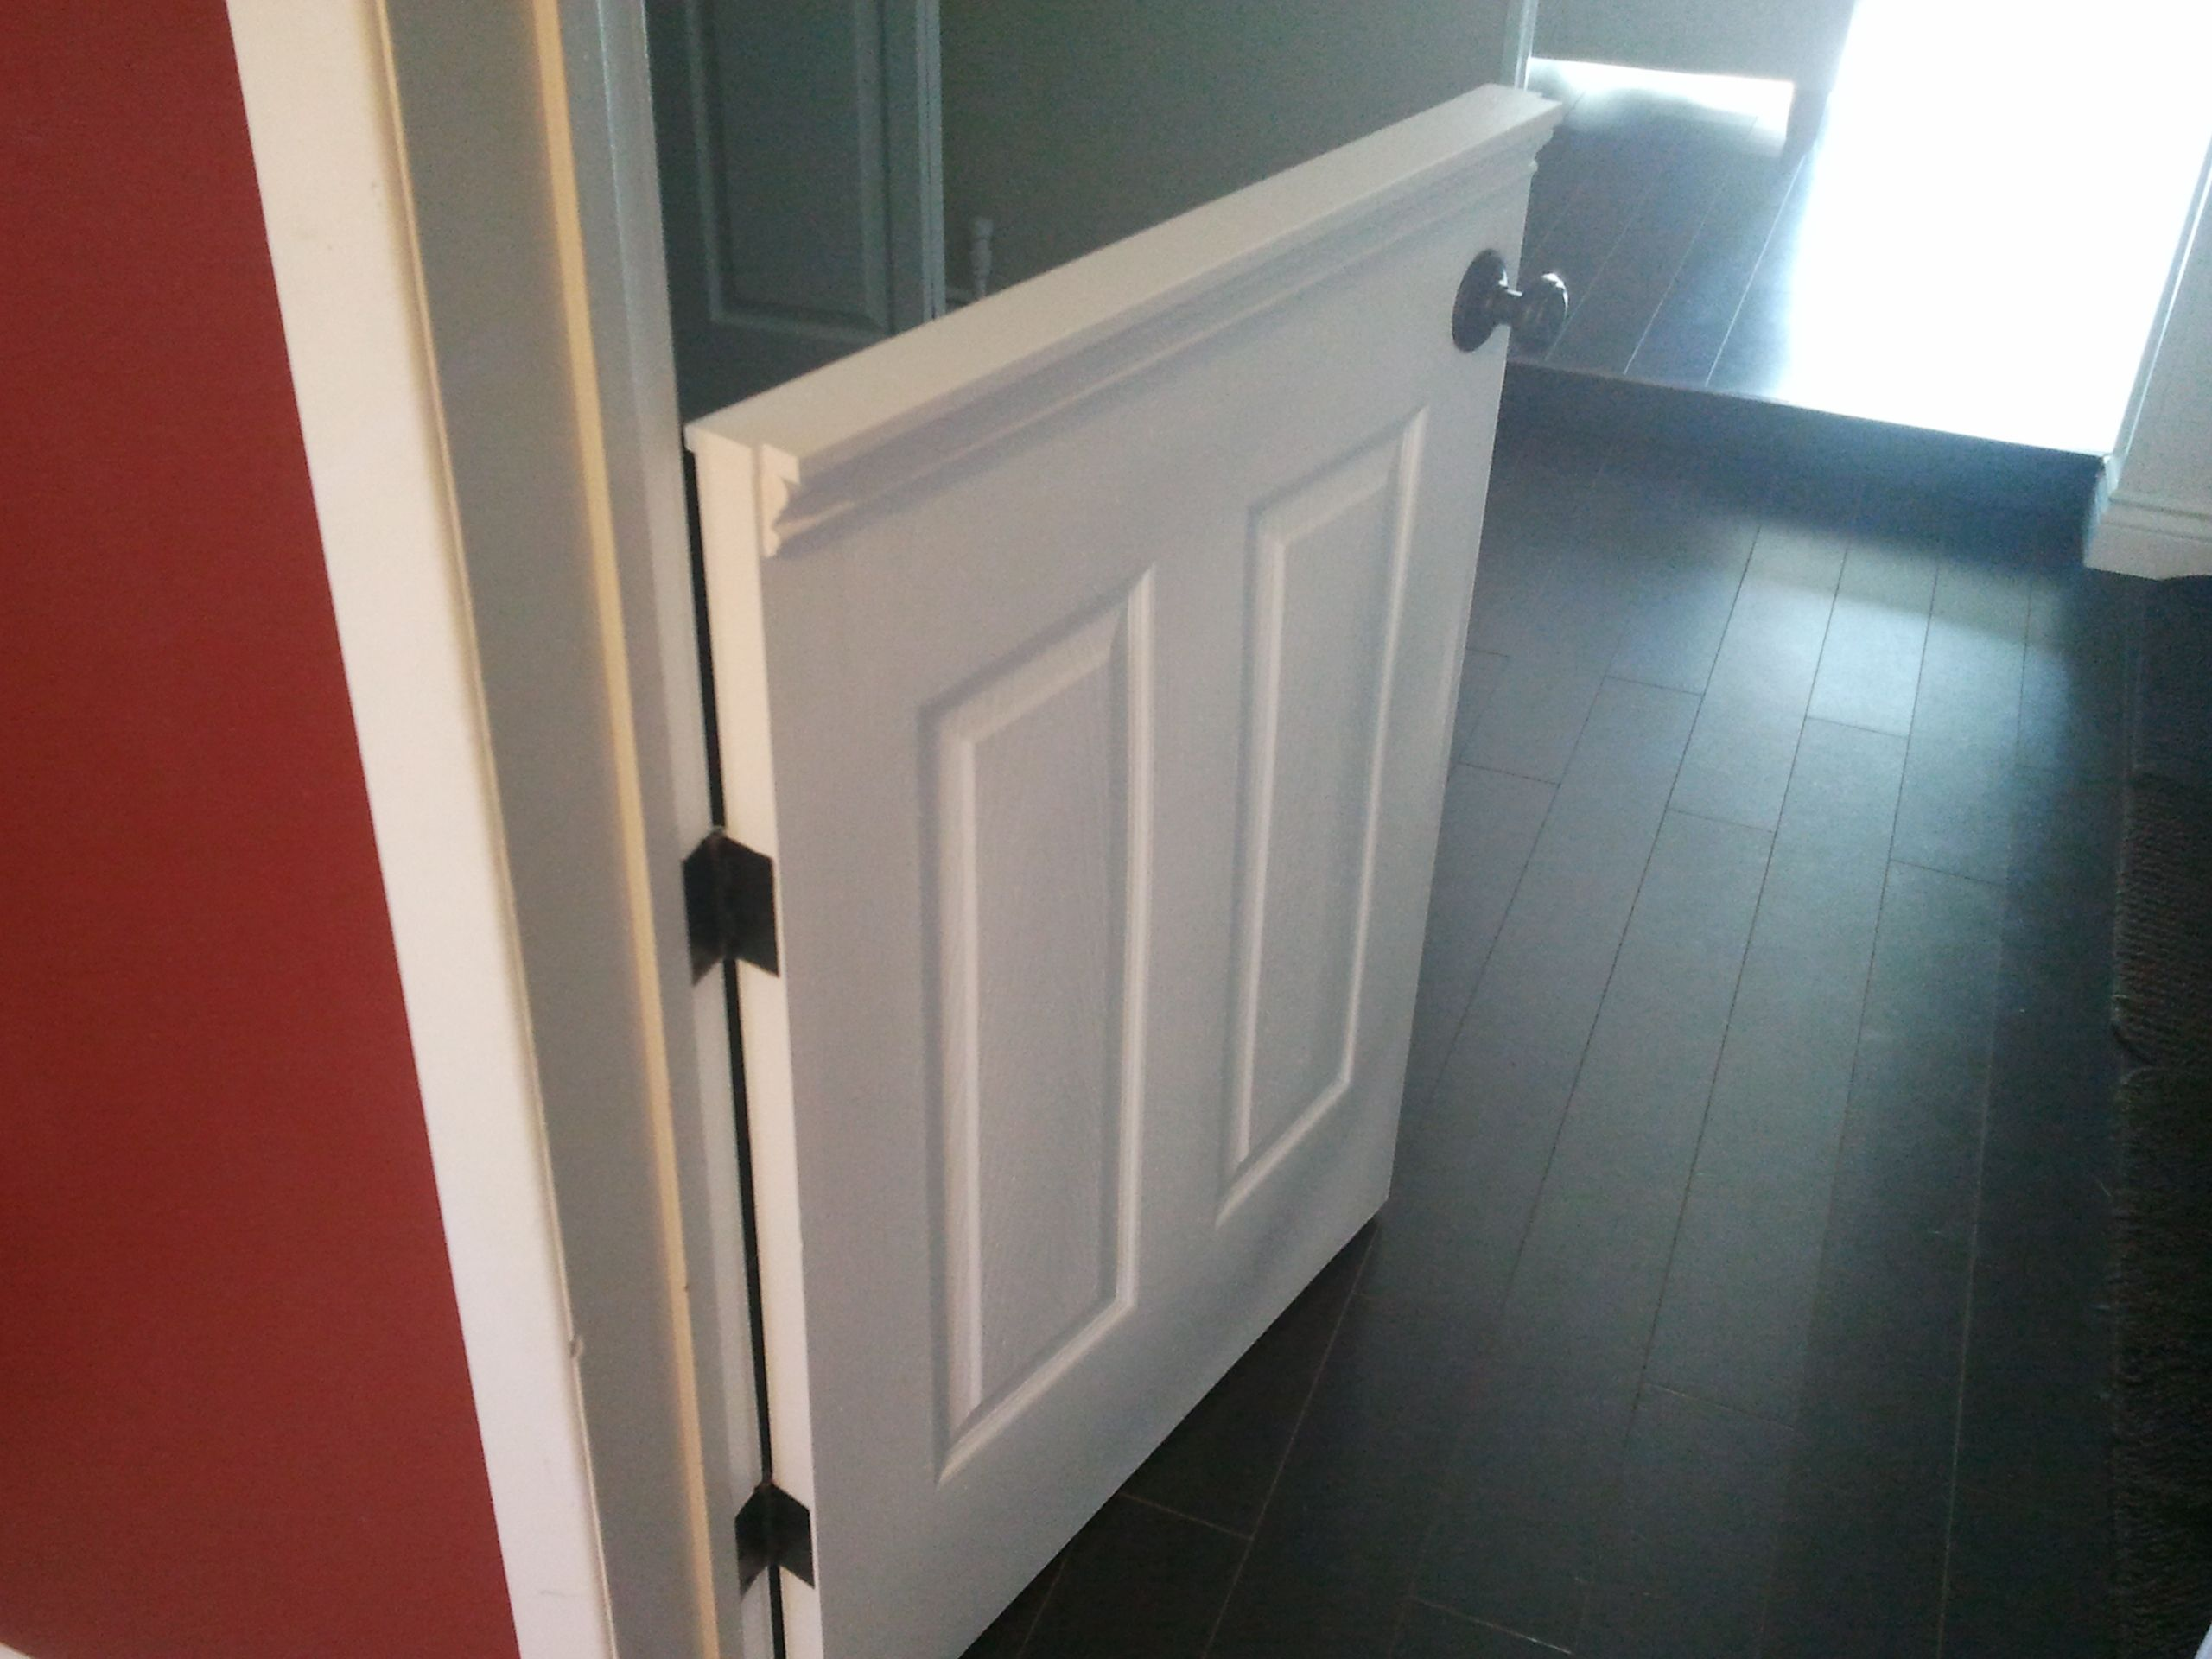 half doors | installed a half door to isolate our dog from the laminate flooring . & half doors | installed a half door to isolate our dog from the ...